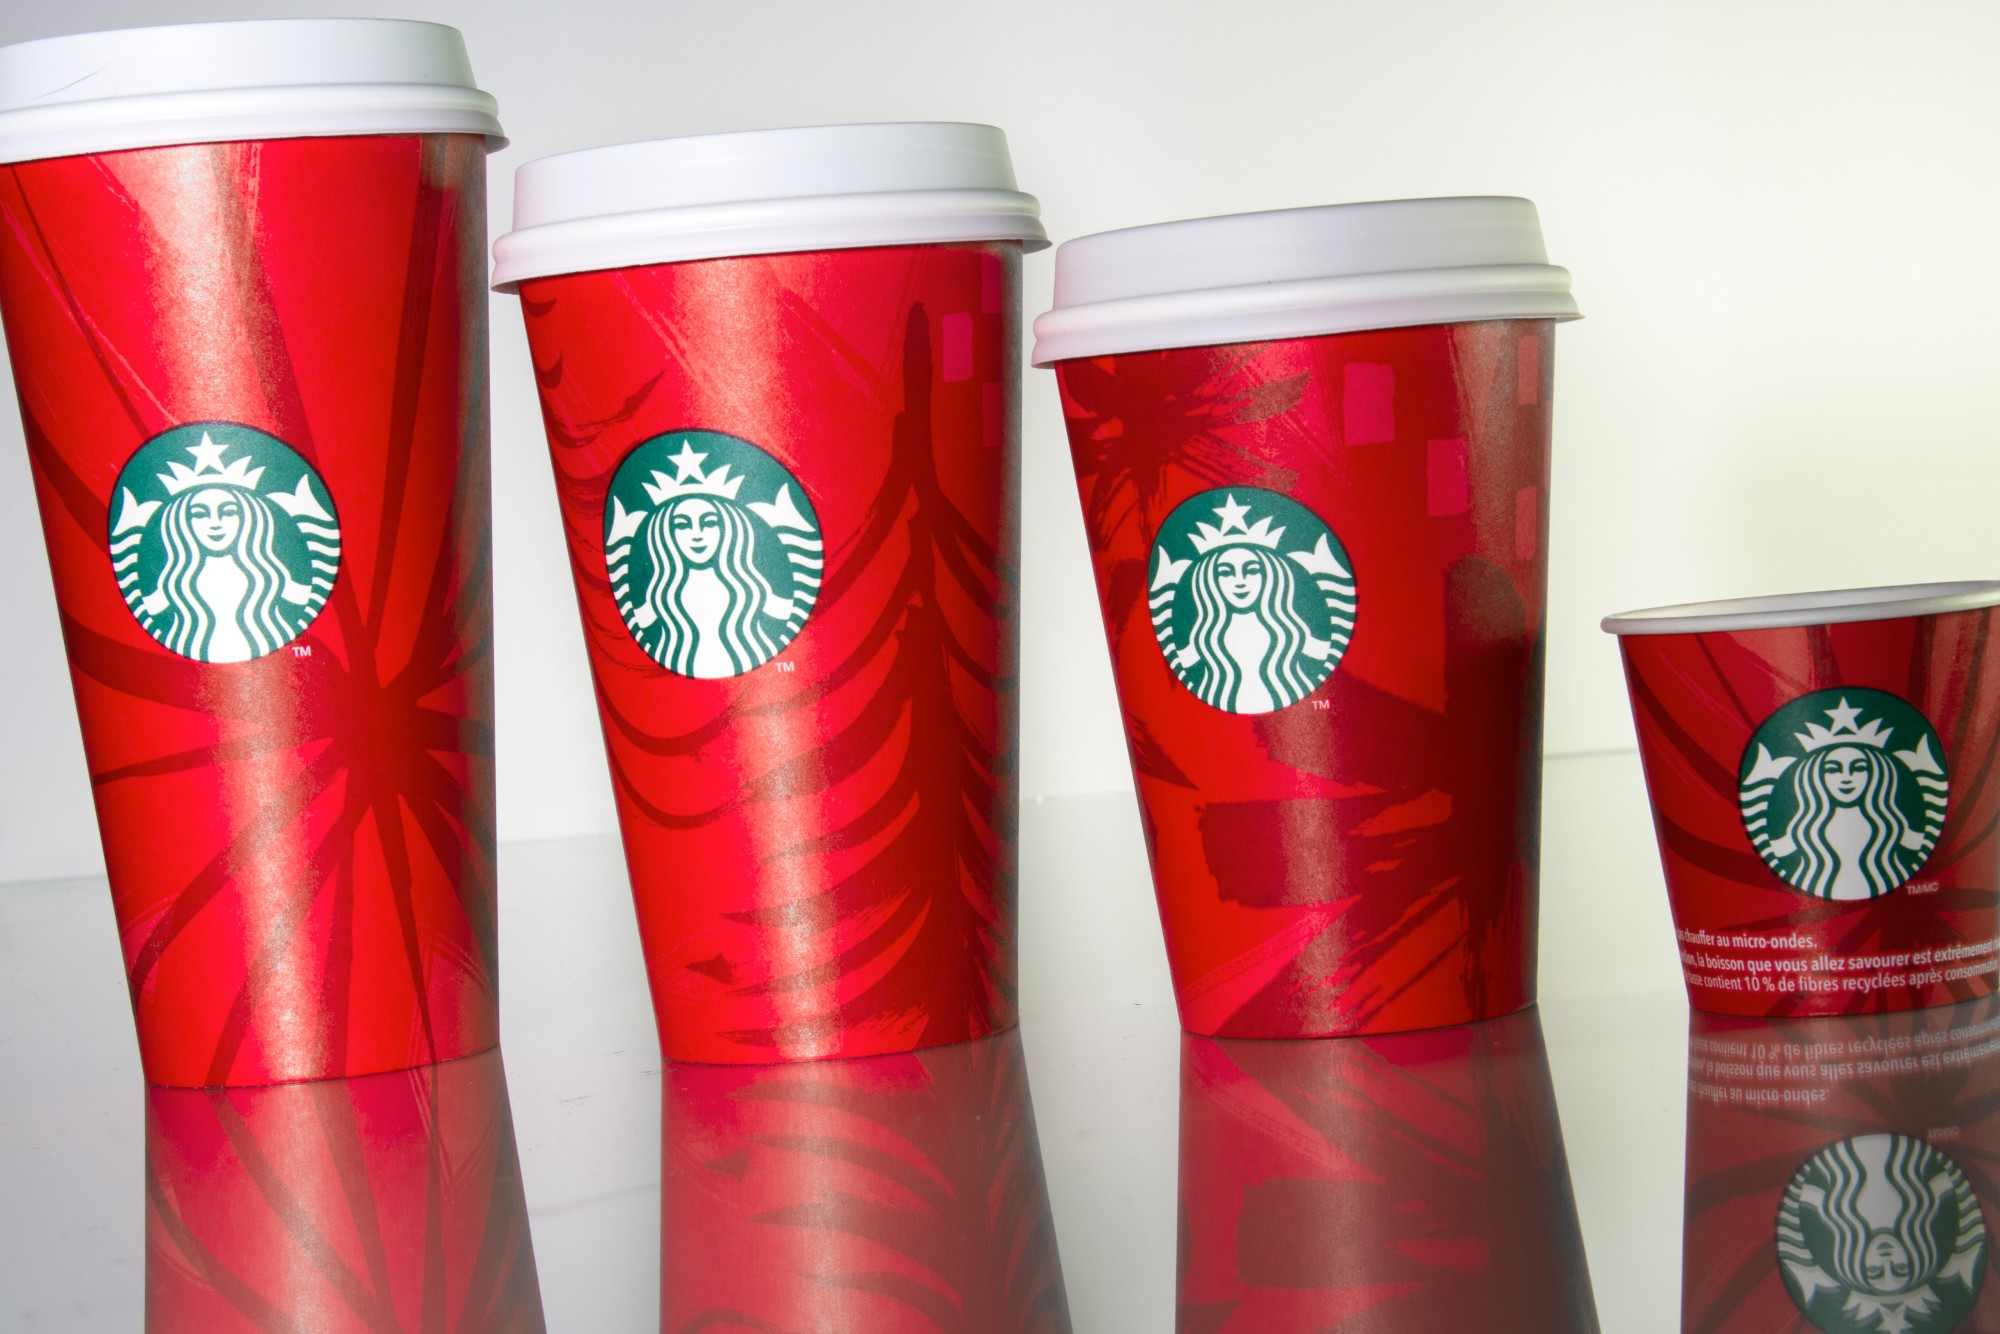 Seeing Red over Red Cups | Counterintuity